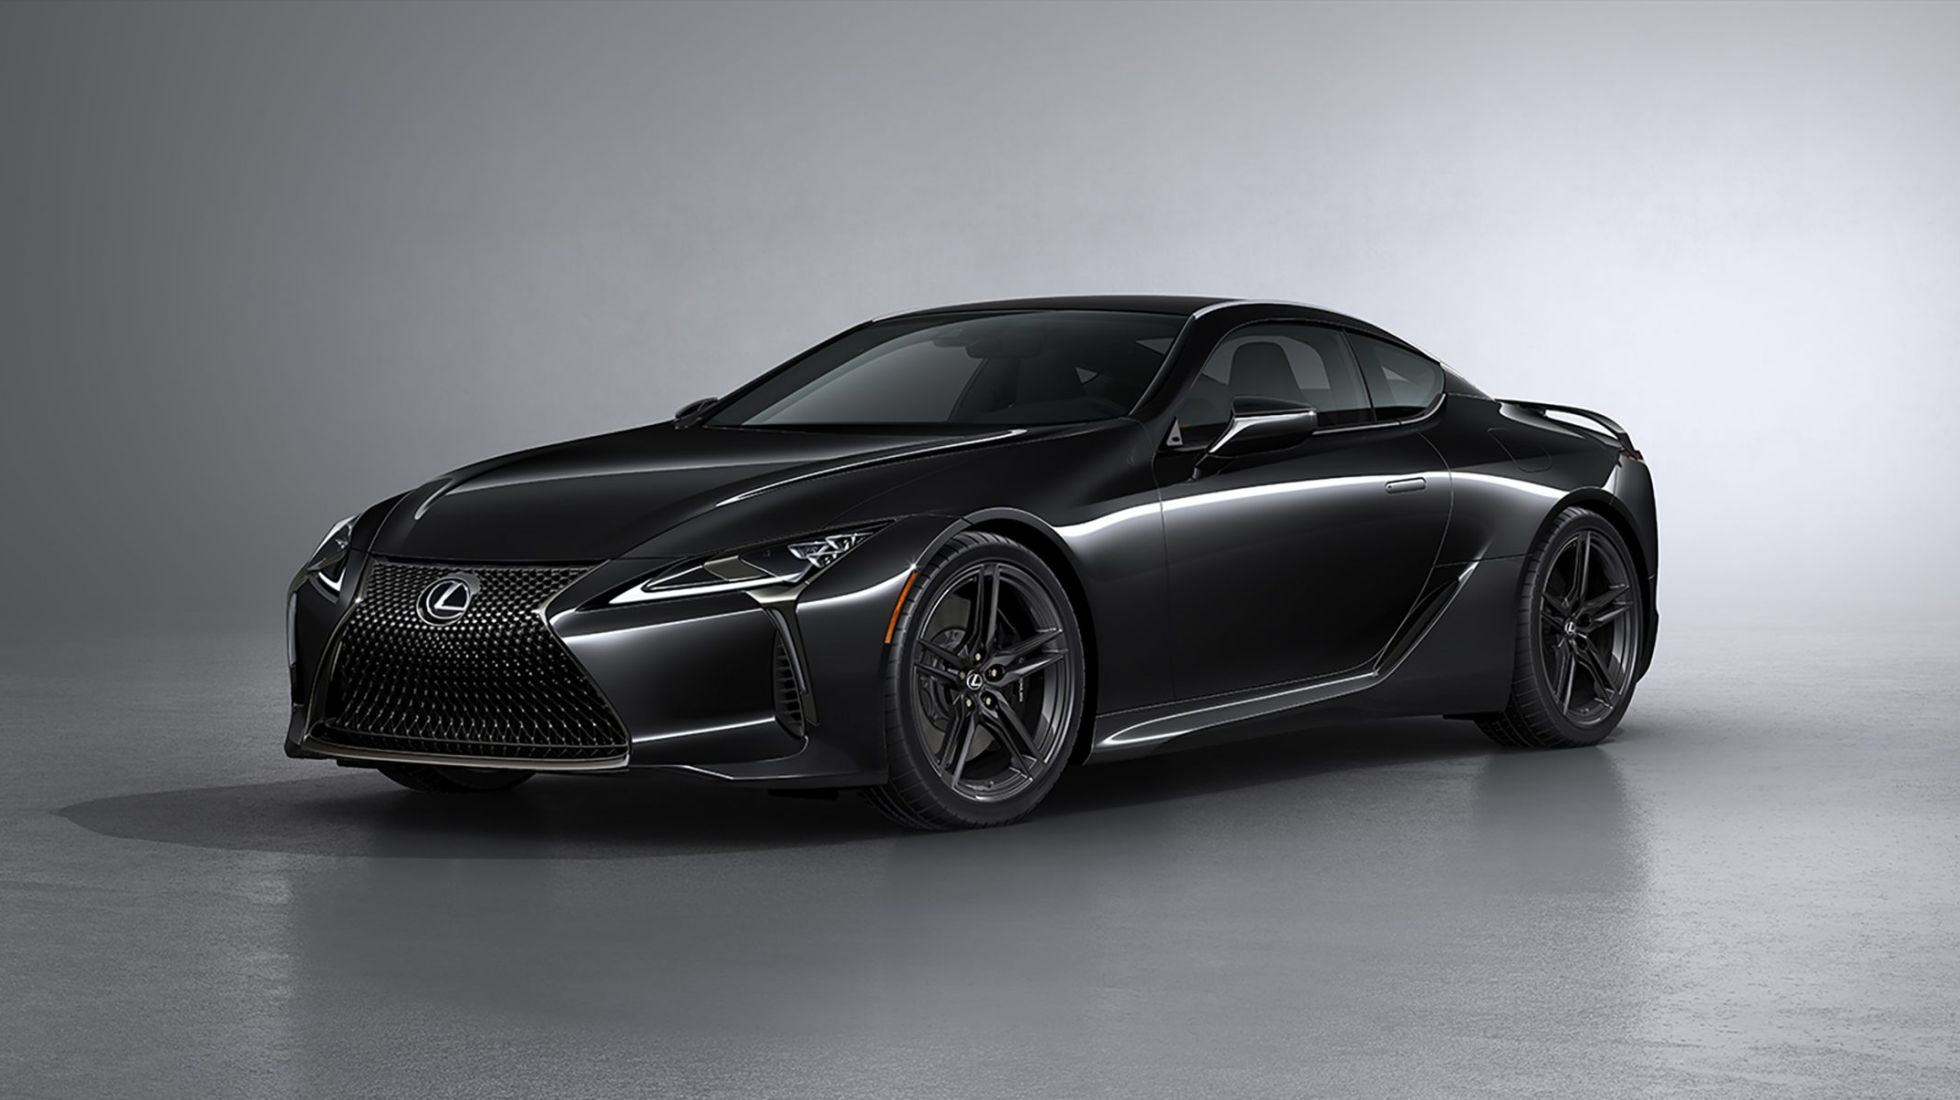 Lexus brings Black Inspiration pack to its LC, ditches its chrome